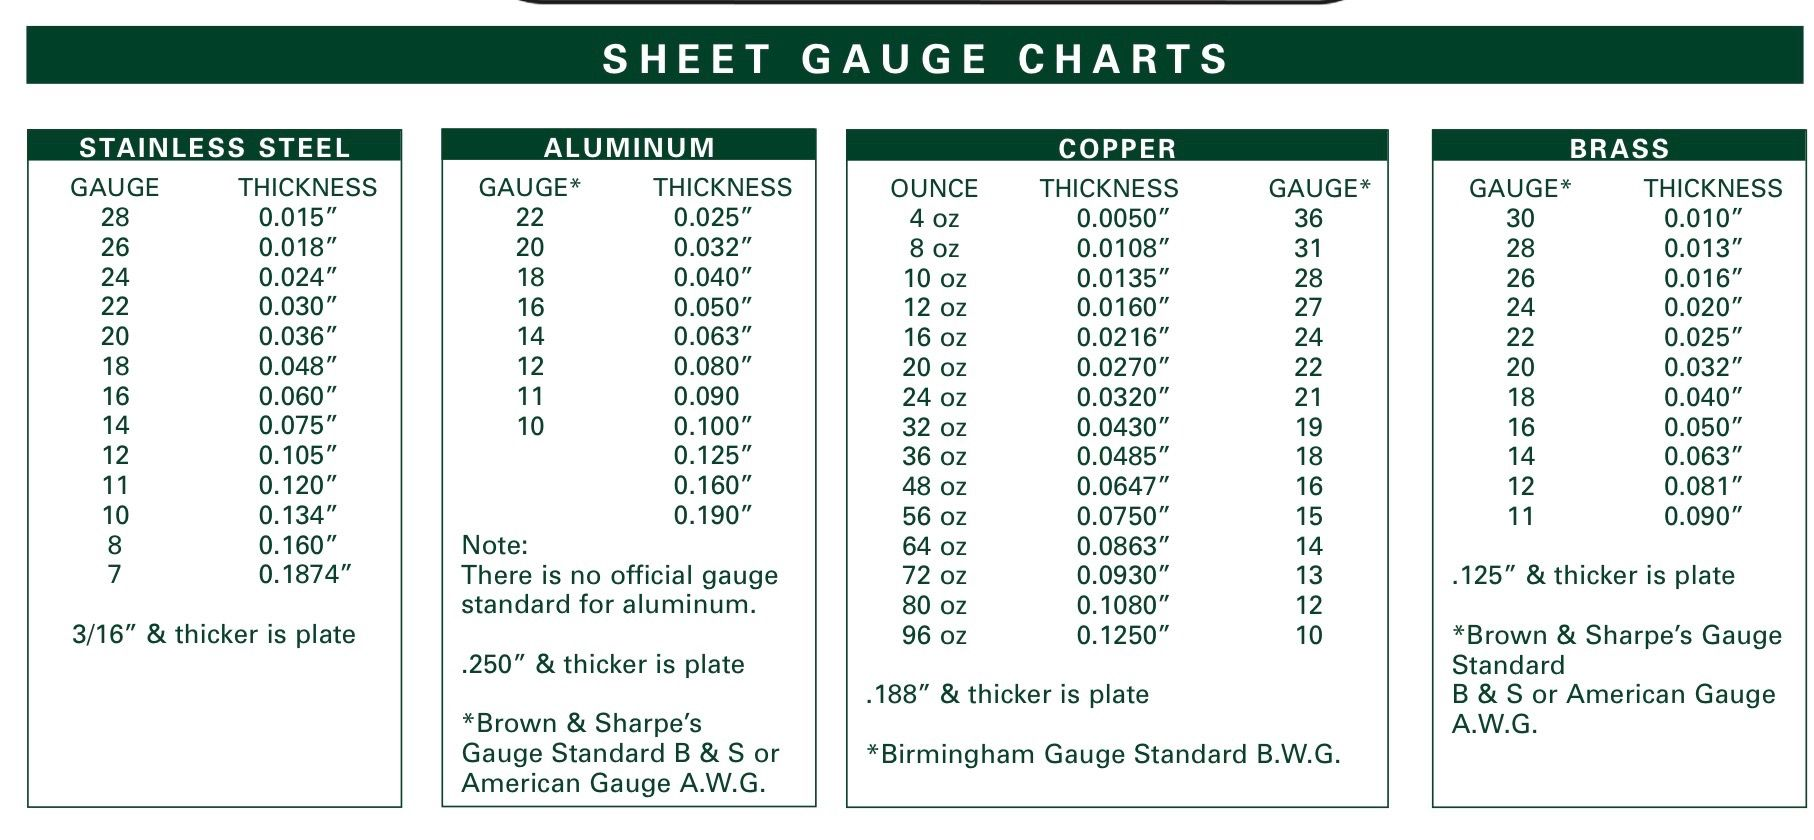 Pin By Laurie Simpson On Charts Sheet Metal Gauge Metal Gauge Steel Sheet Metal